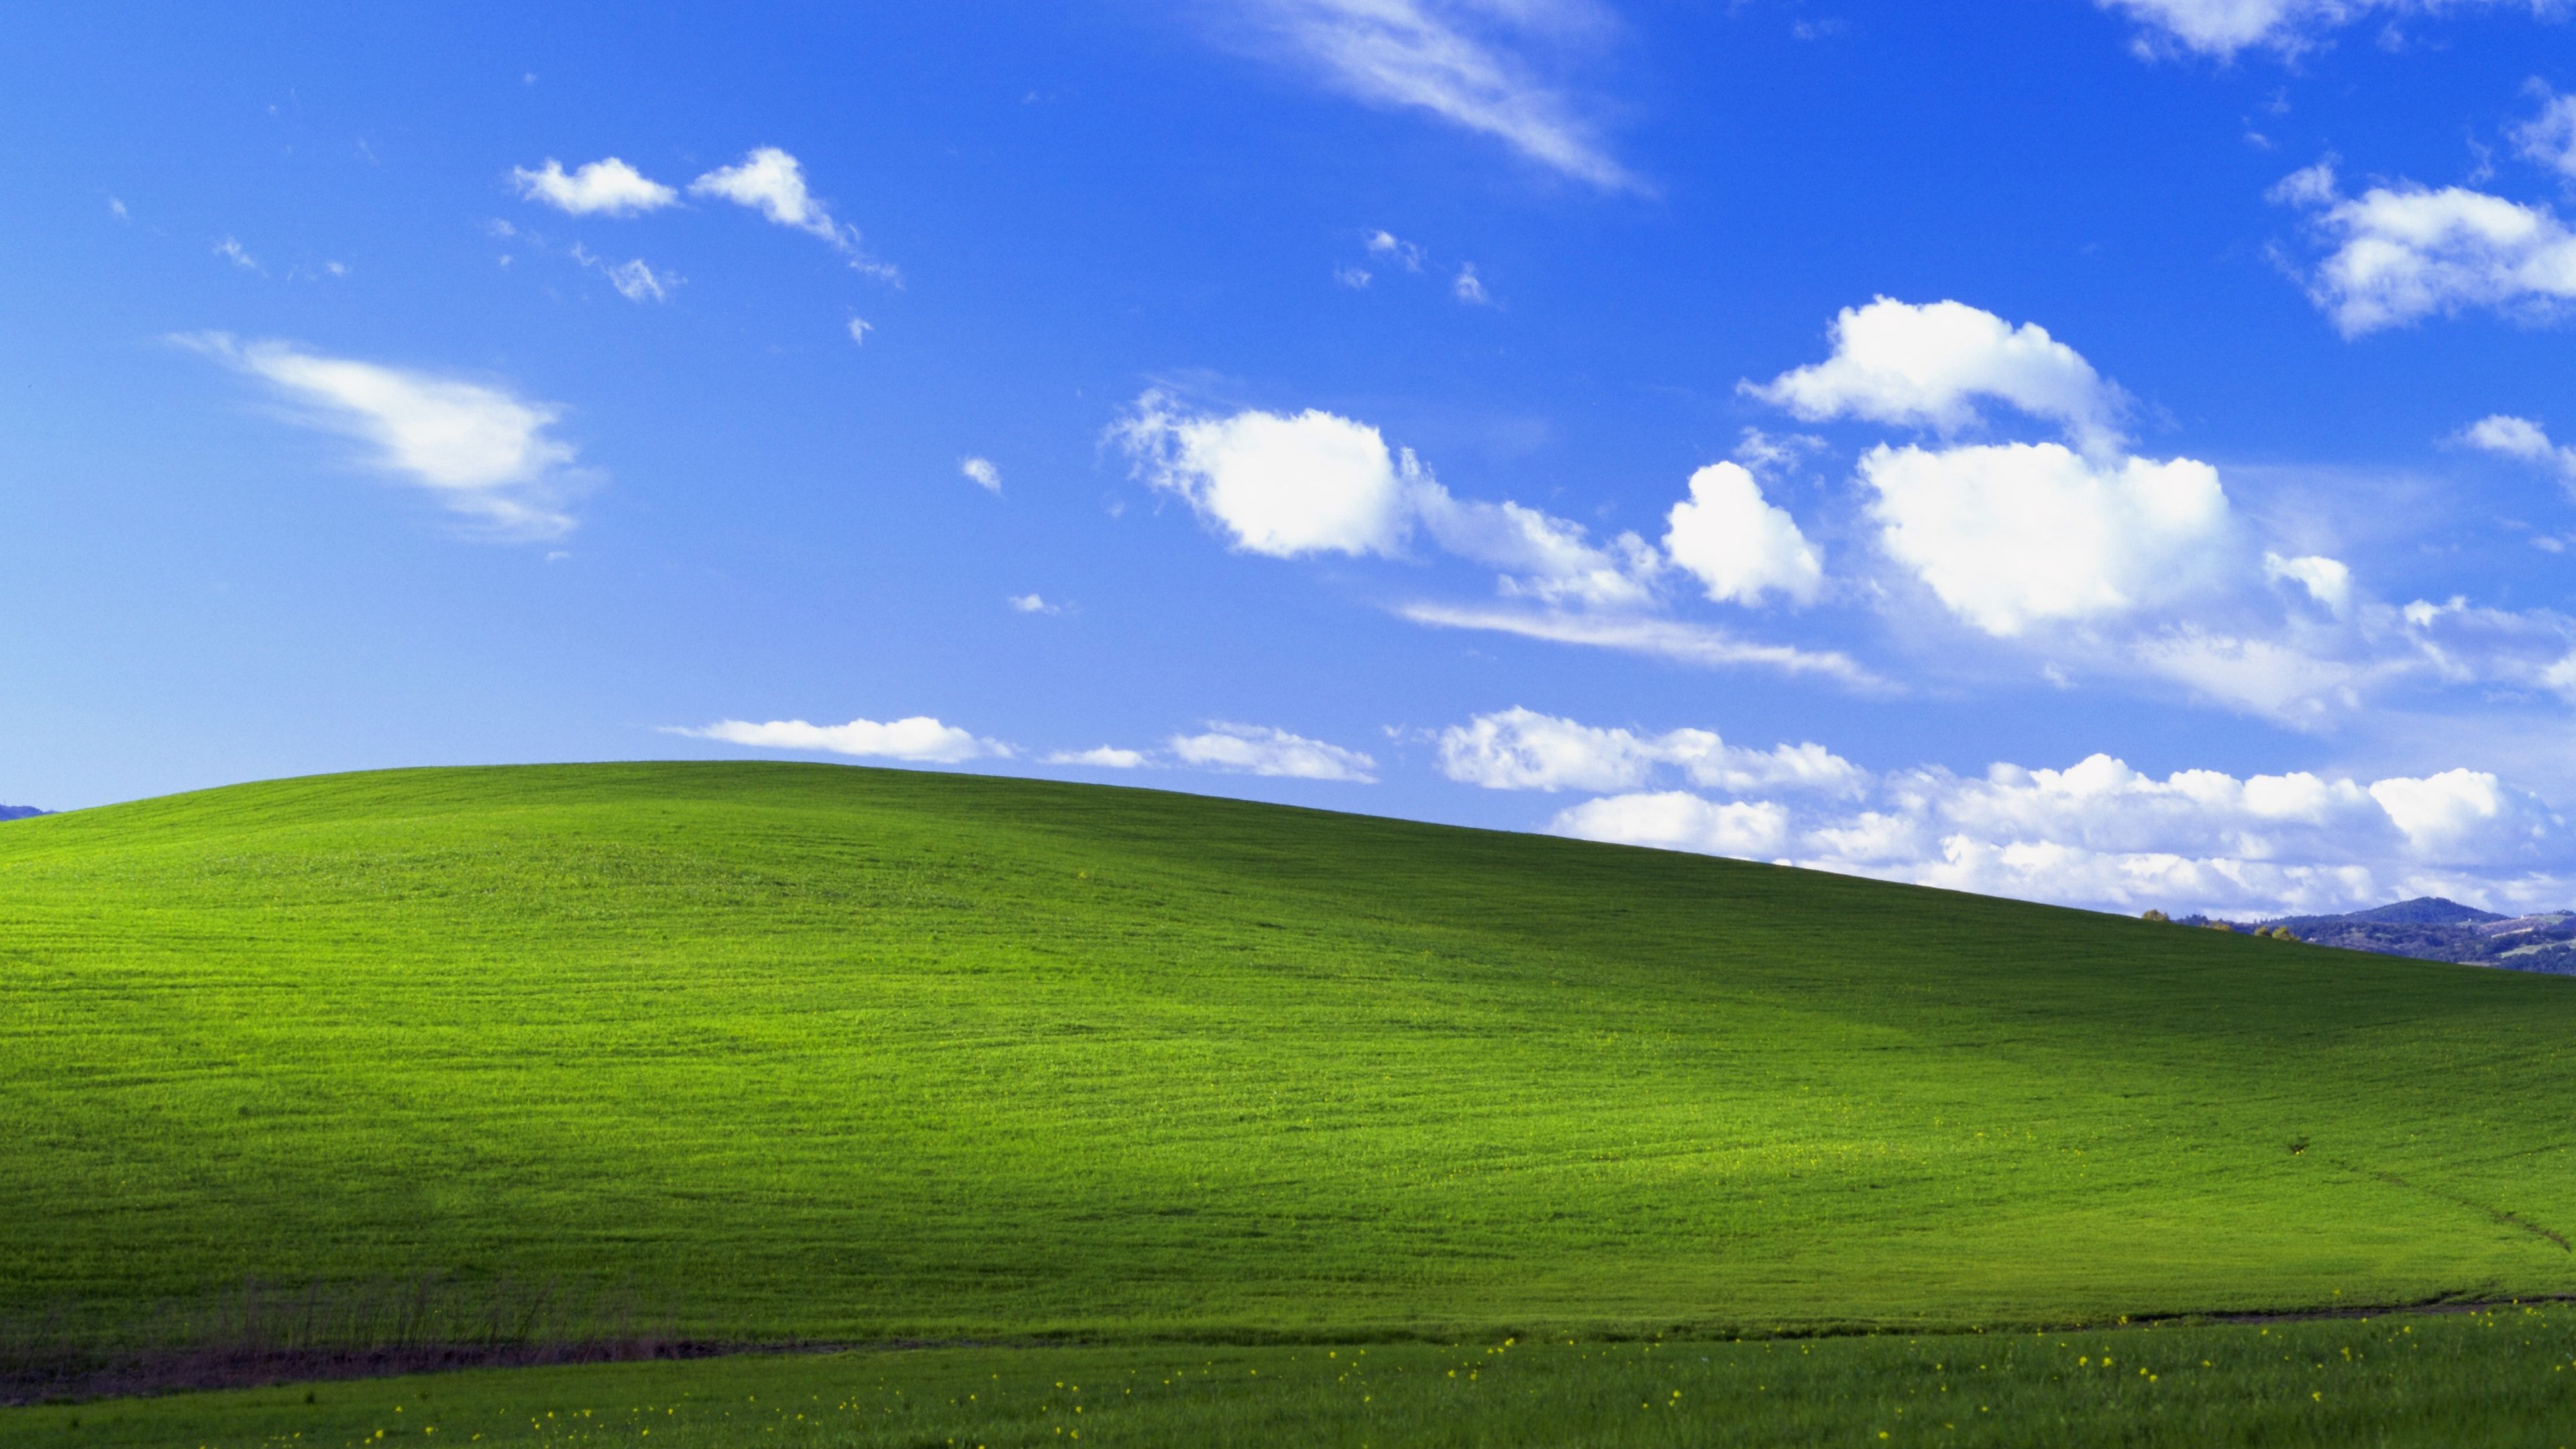 Windows XP Wallpapers   Top Windows XP Backgrounds 3840x2160